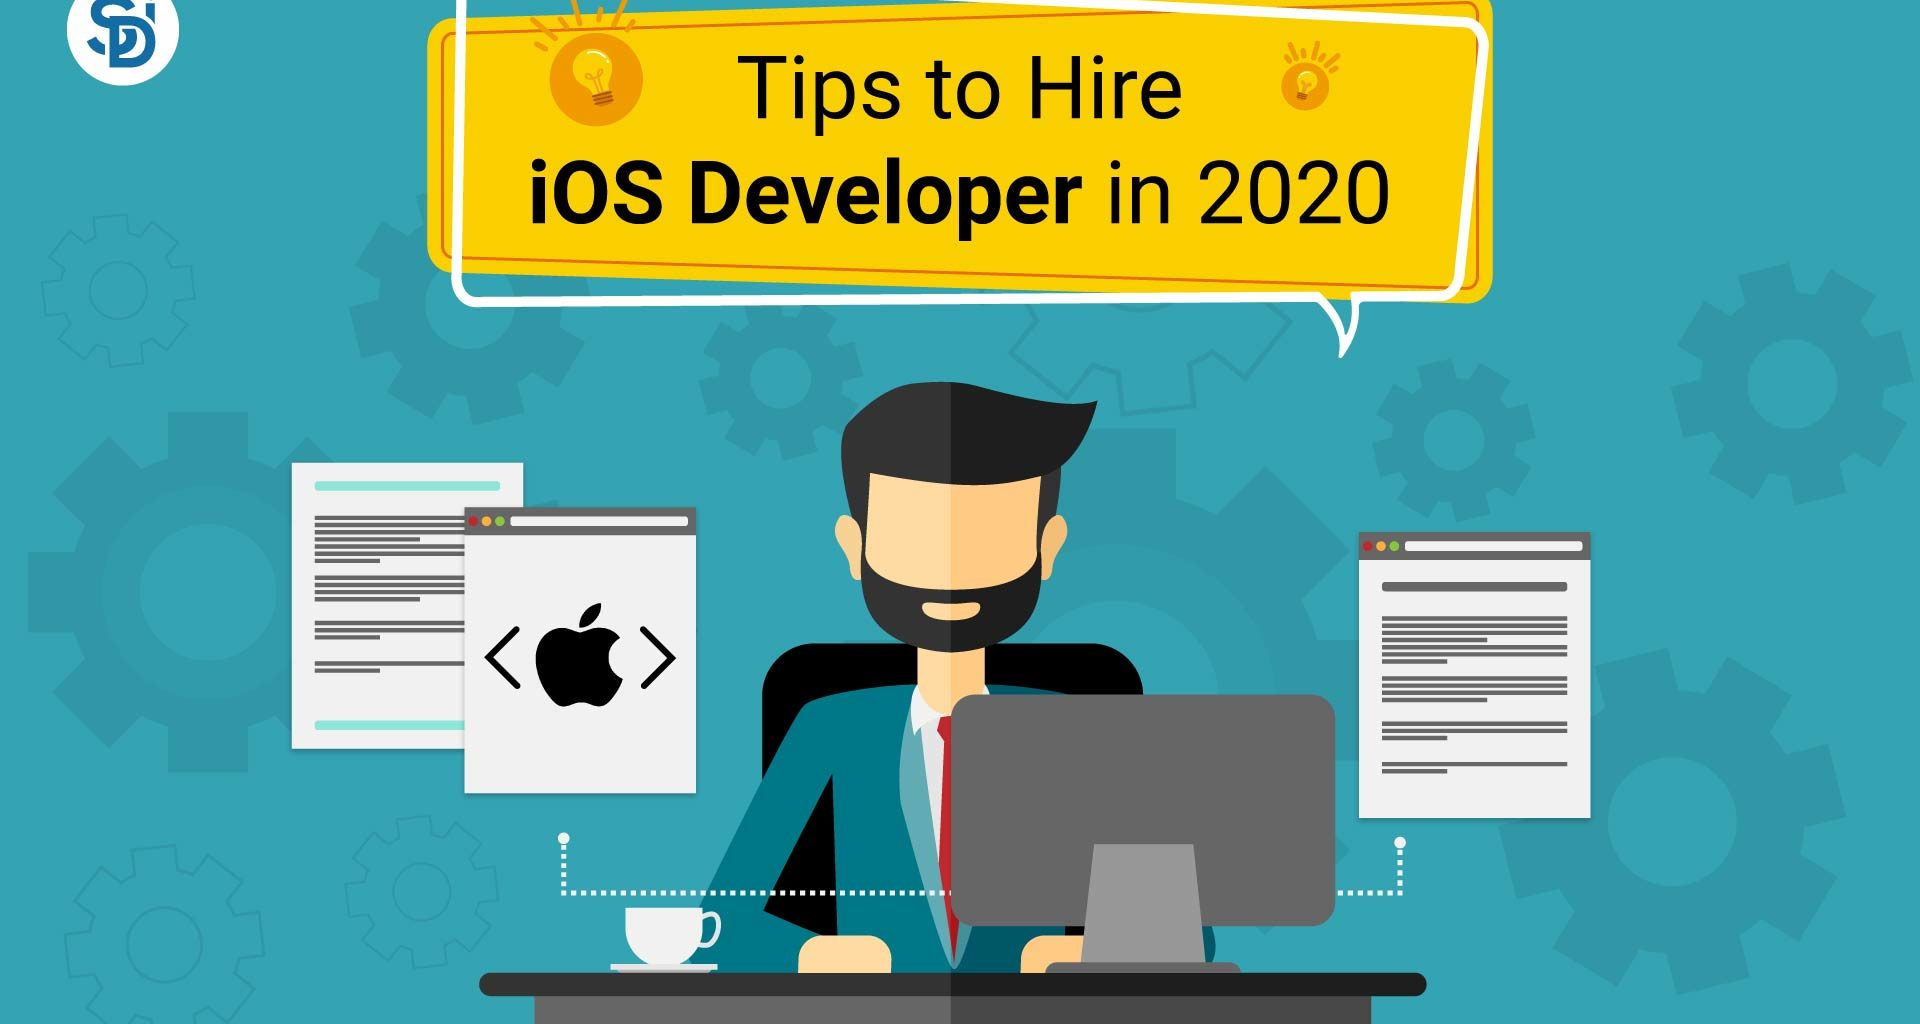 Tips to Hire iOS Developer